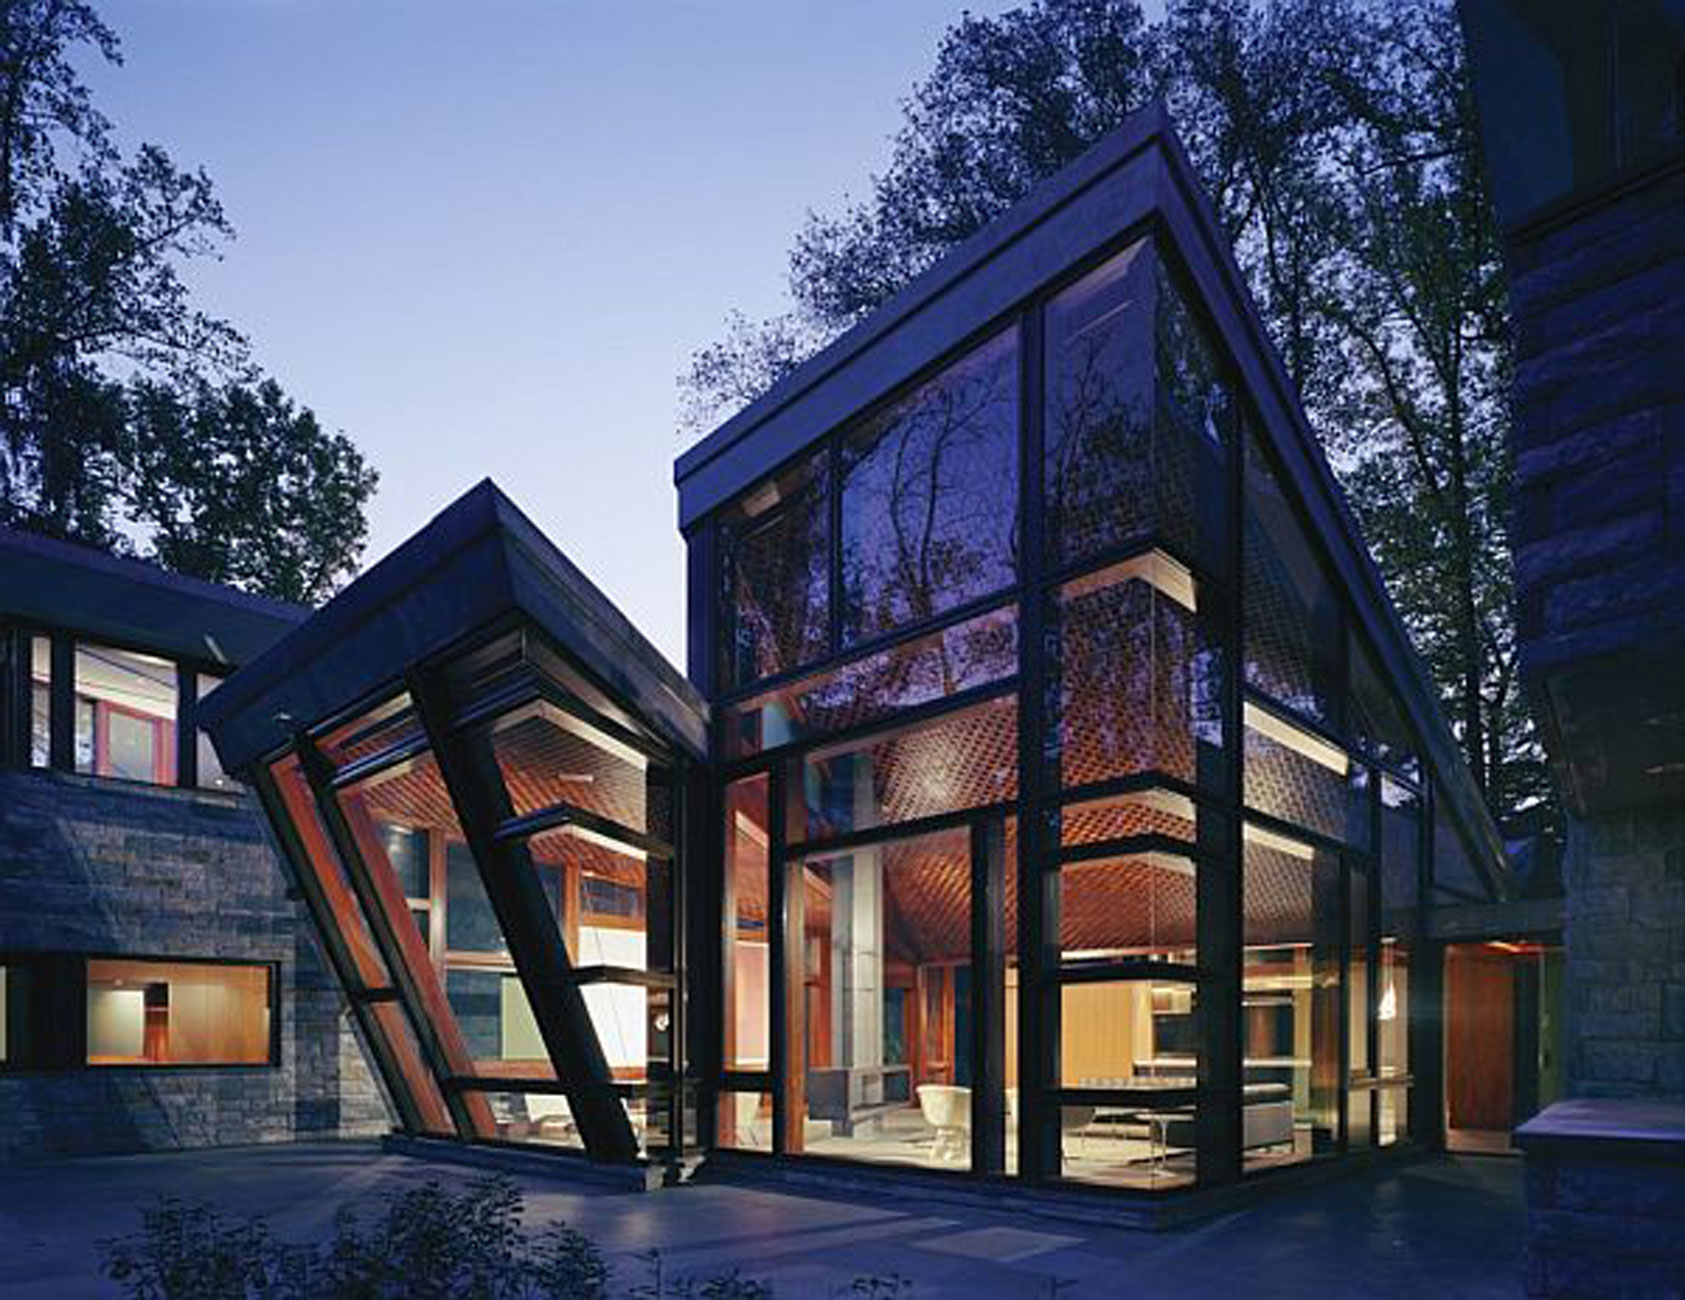 Sunday evening art gallery blog glass houses humoring for Contemporary architecture houses